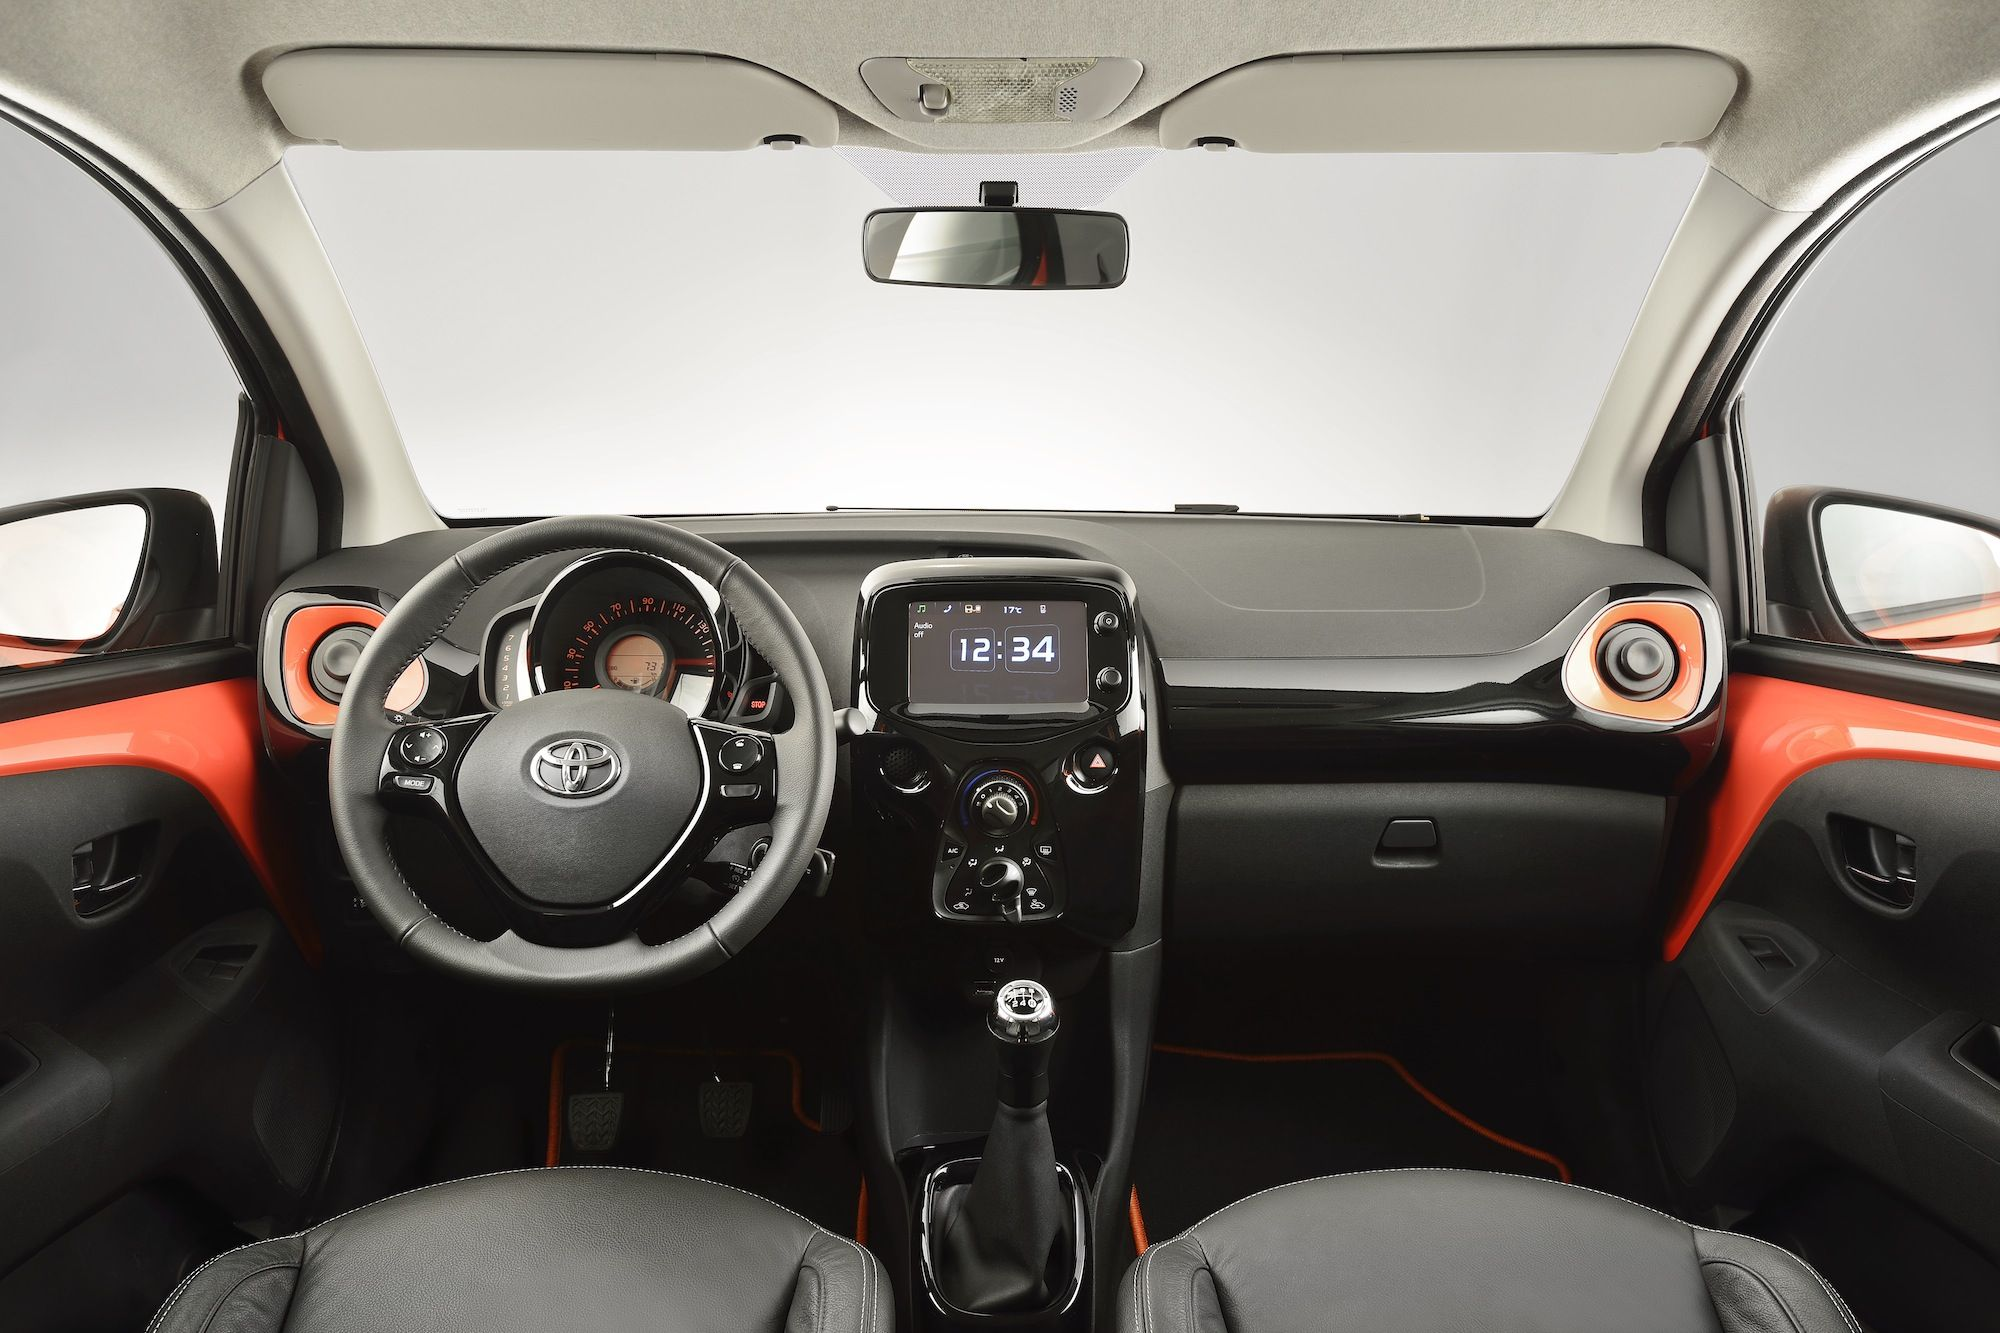 New Aygo interior | Cars/Motorbikes | Pinterest